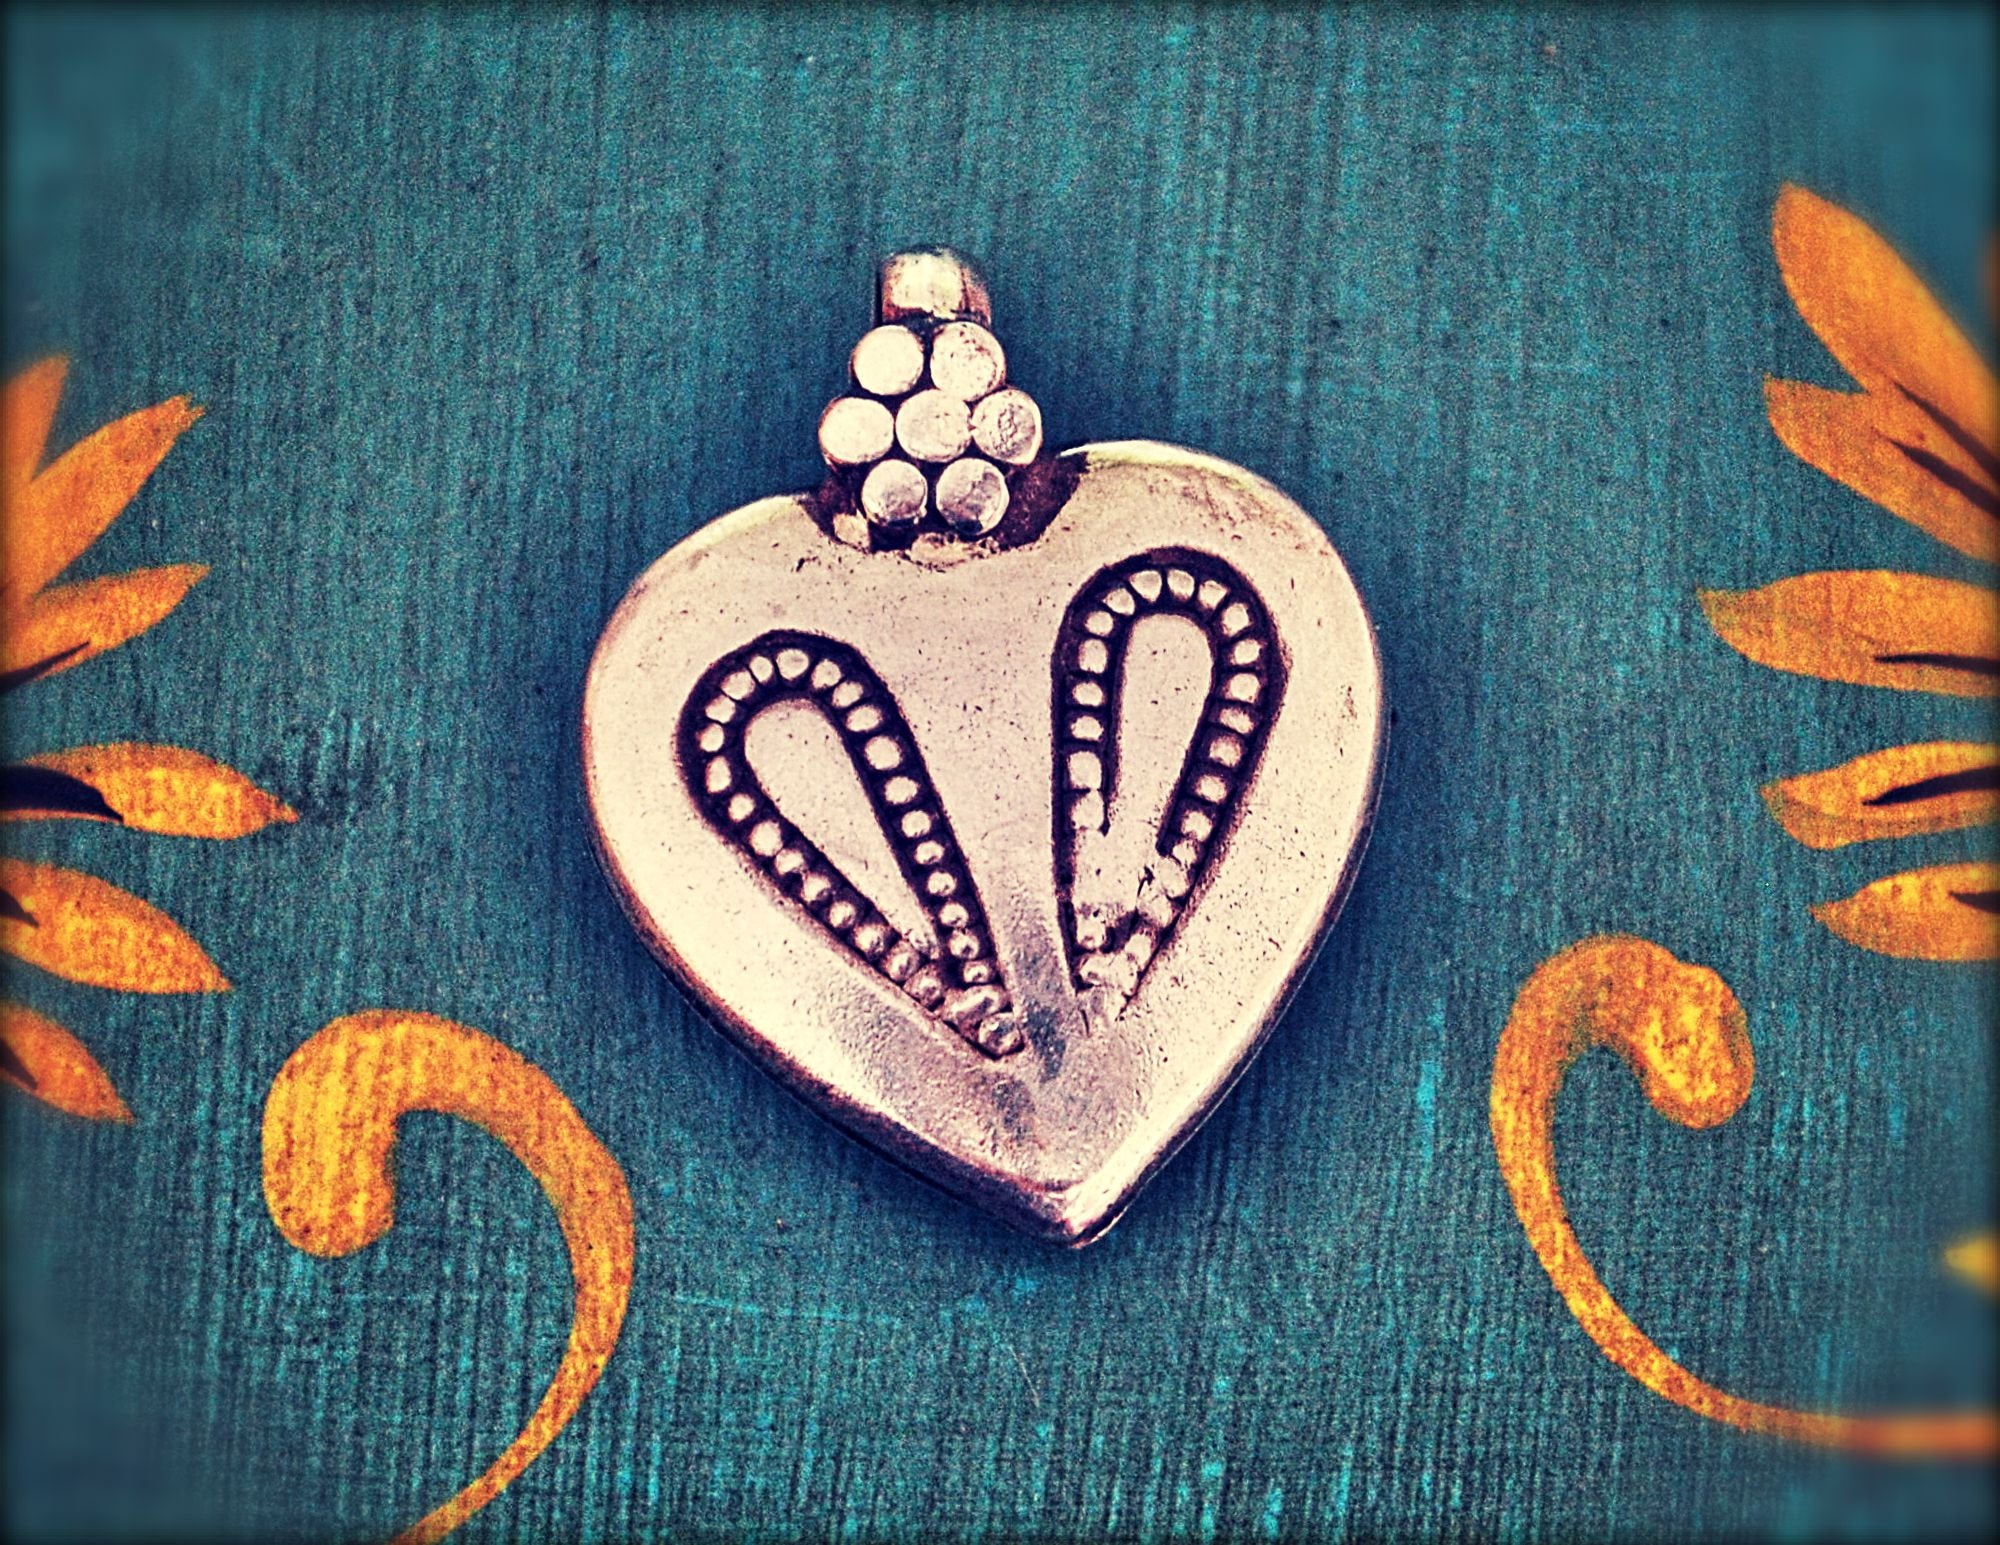 Old Rajasthan Silver Amulet - Tribal Indian Heart Pendant - Tribal Rajasthan Pendant - Tribal Heart Pendant - Gypsy Boho Silver Pendant